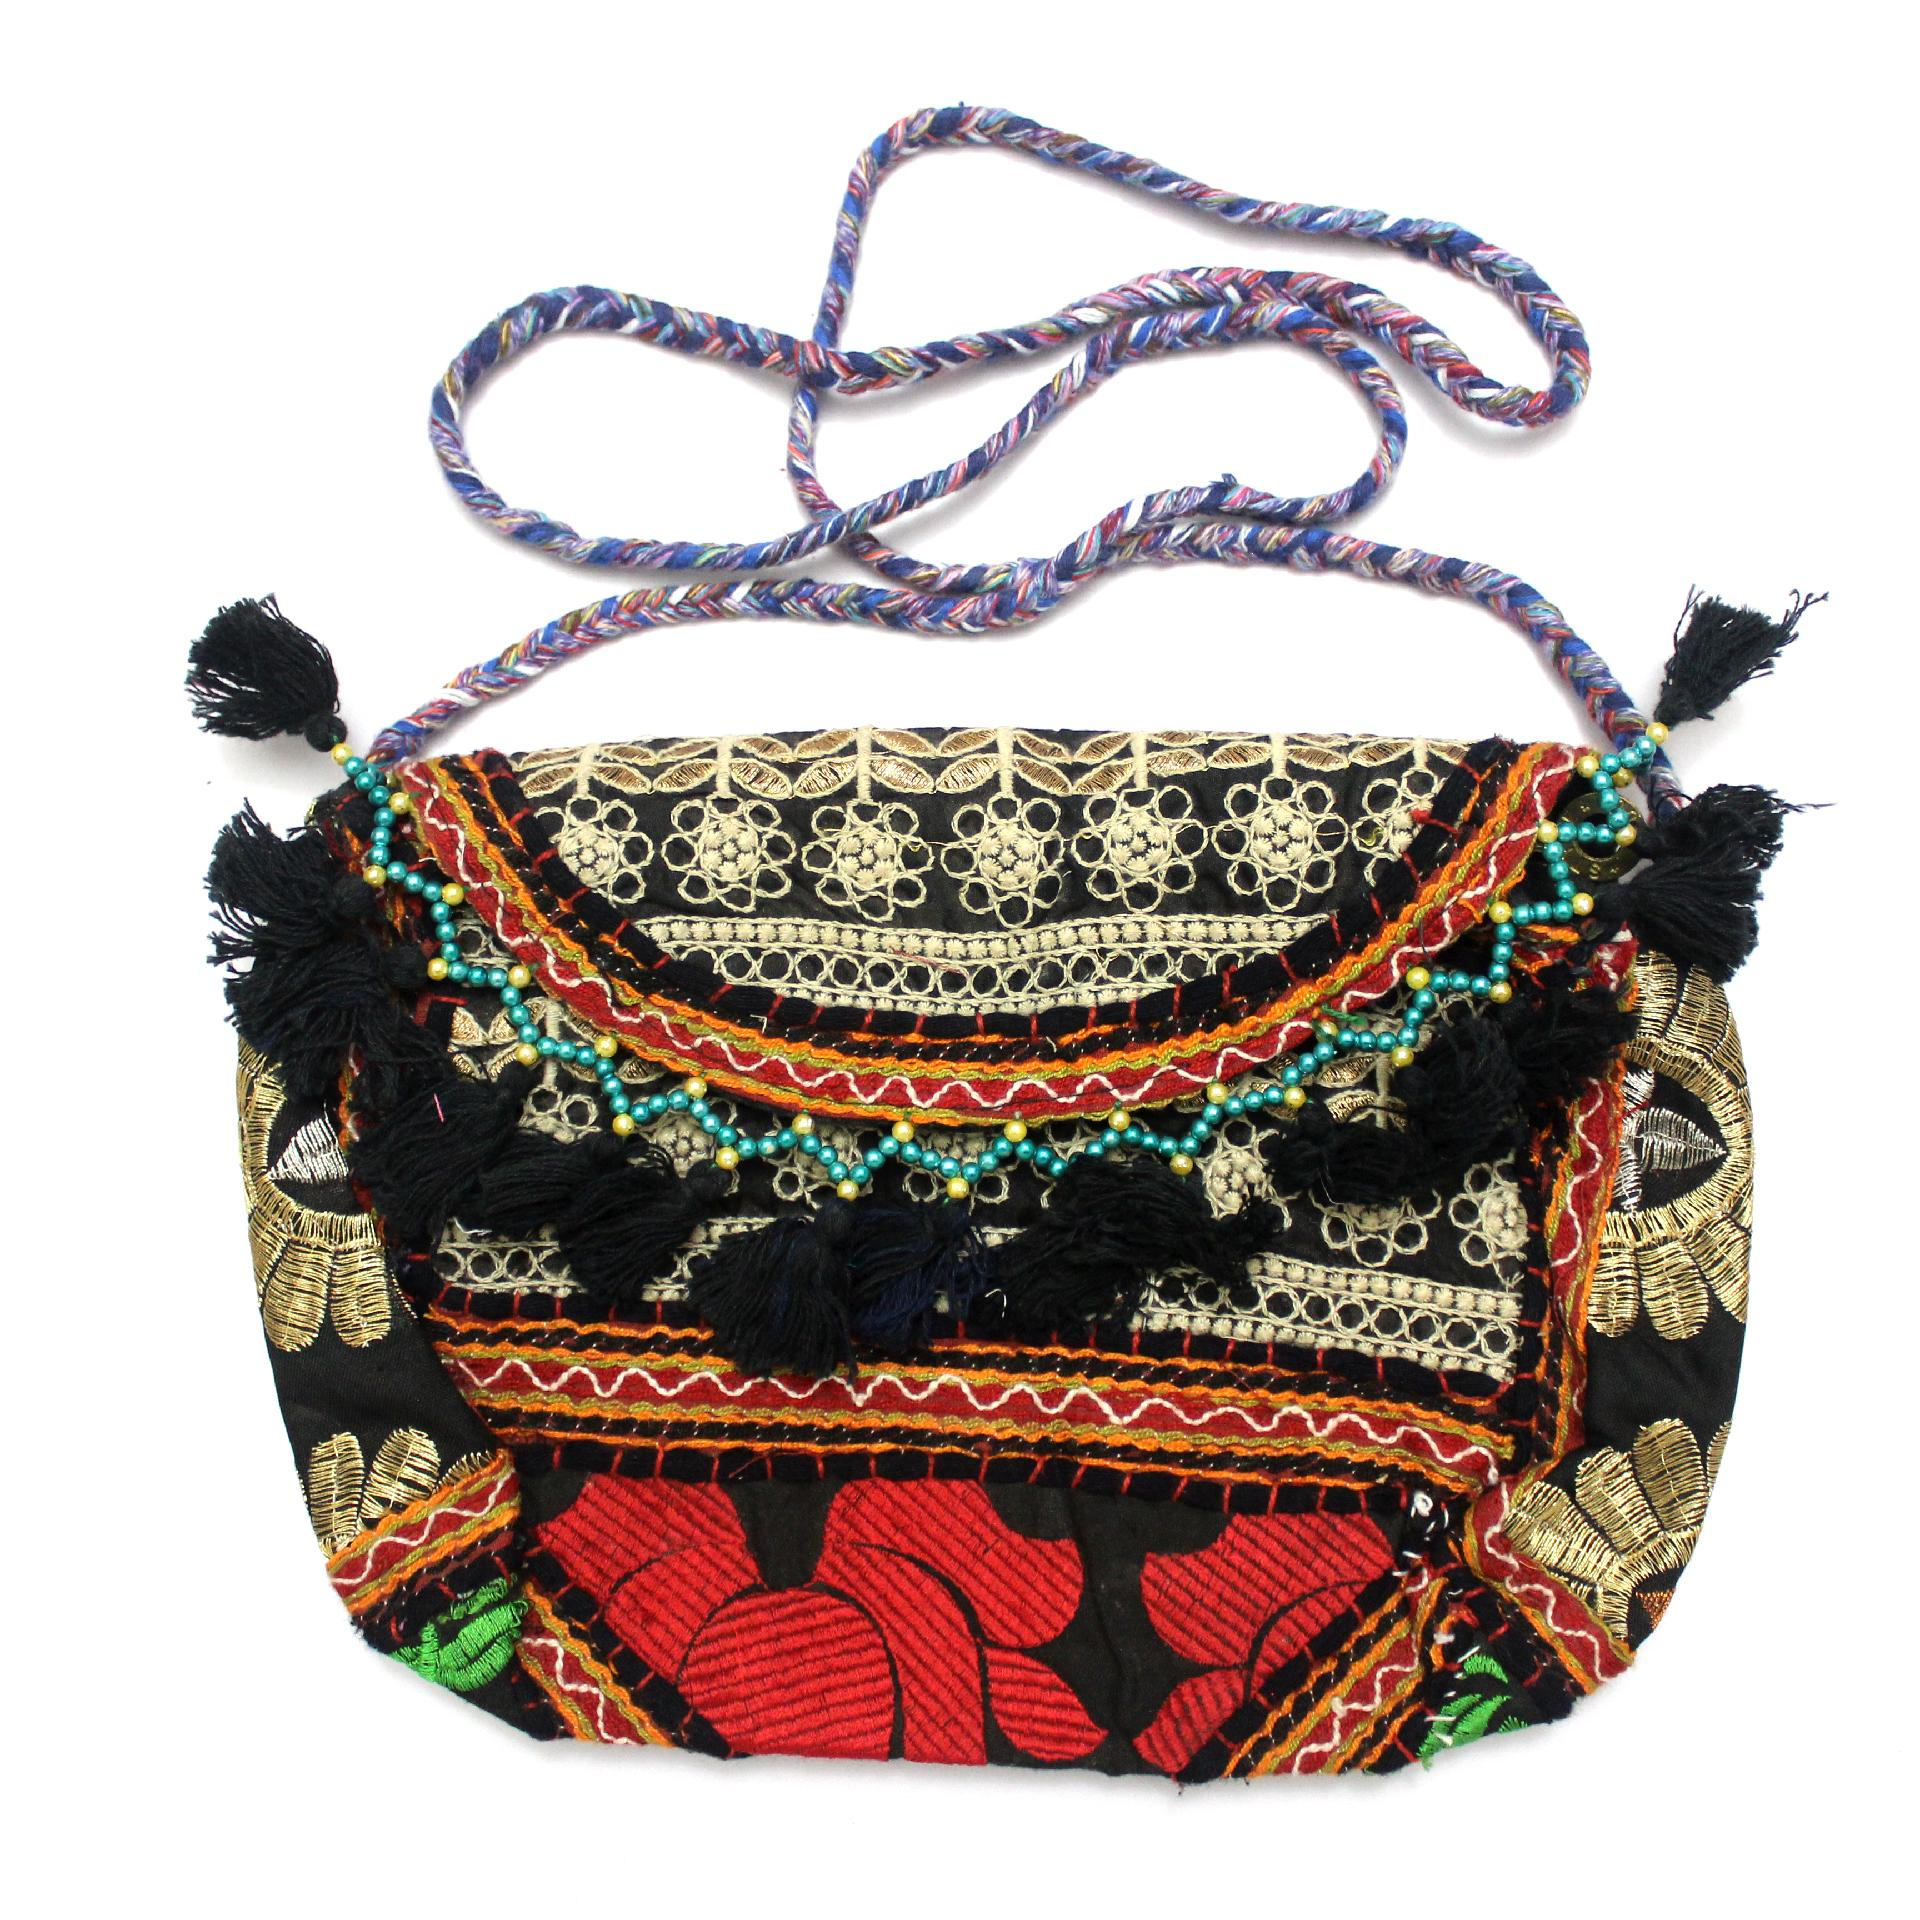 Indian Tribal Antique Vintage Coin Pouch,Handmade Pouch,Vintage Bag,Beads Coin Purse,Coin Purse,Money Purse Banjara Coin Pouch,Beads Purse